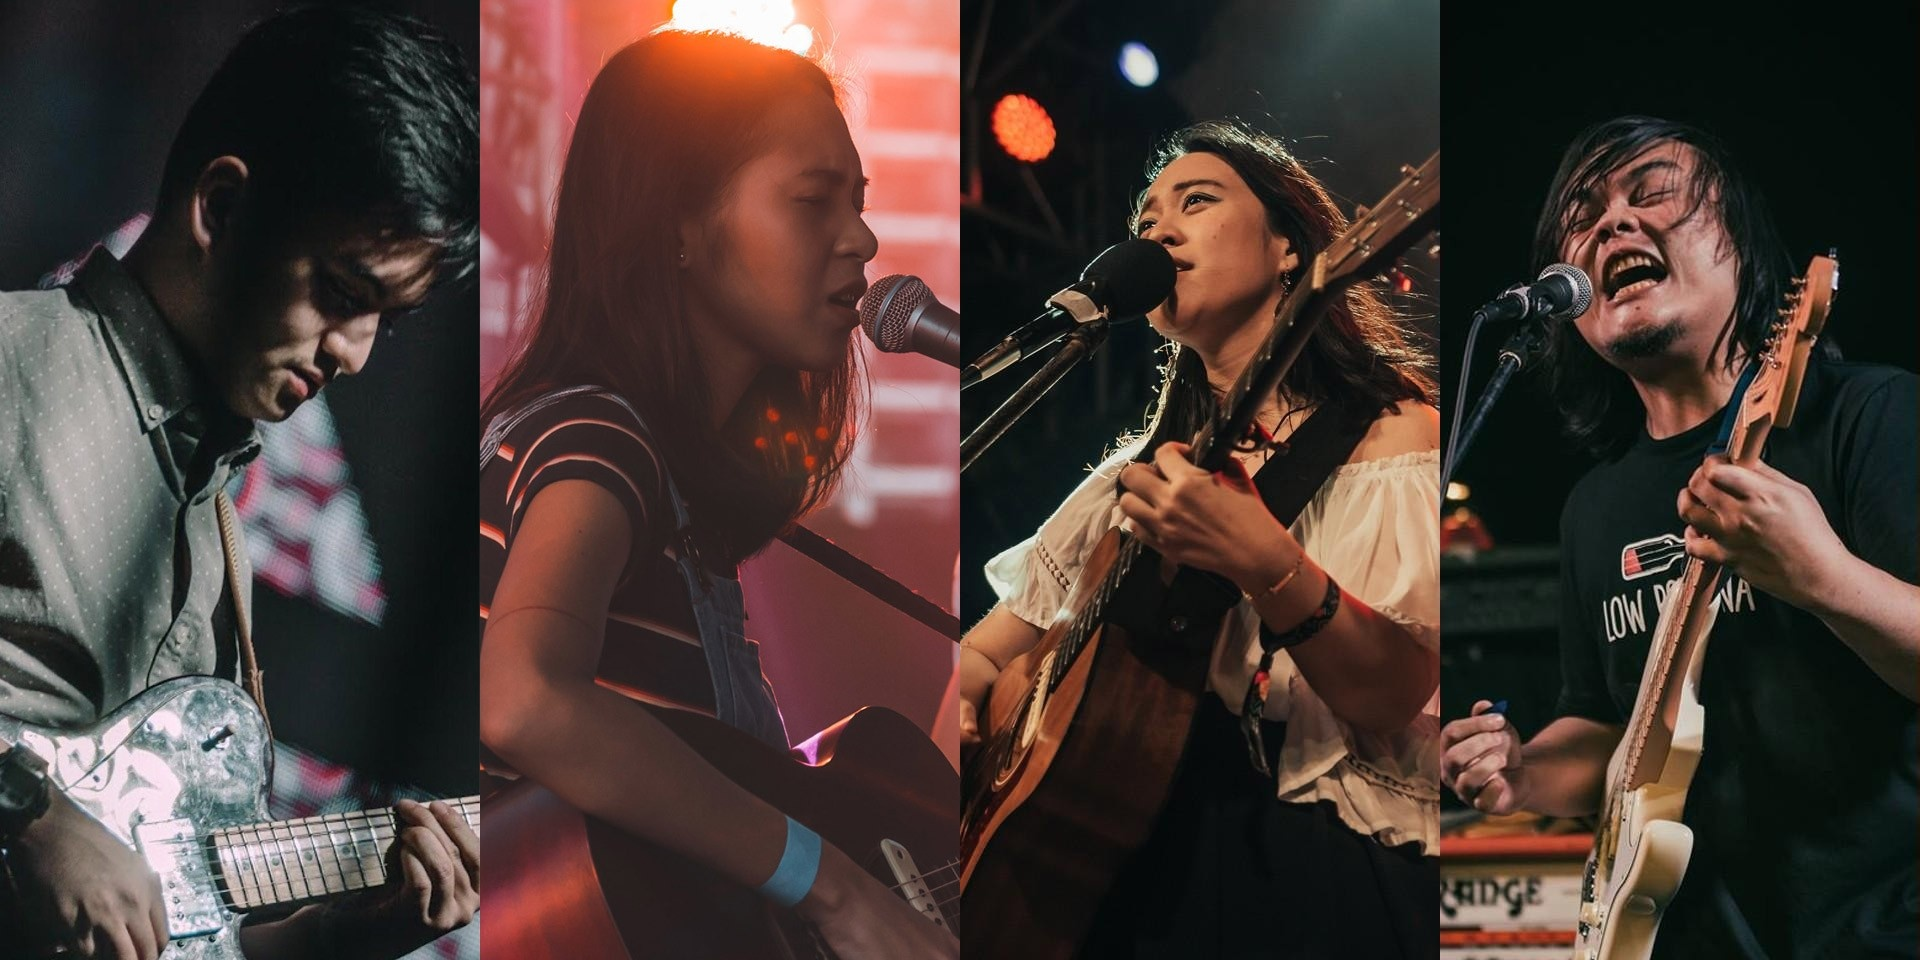 Tom's Story, Clara Benin, Reese Lansangan, Autotelic, and more to give back at GabbaFest3